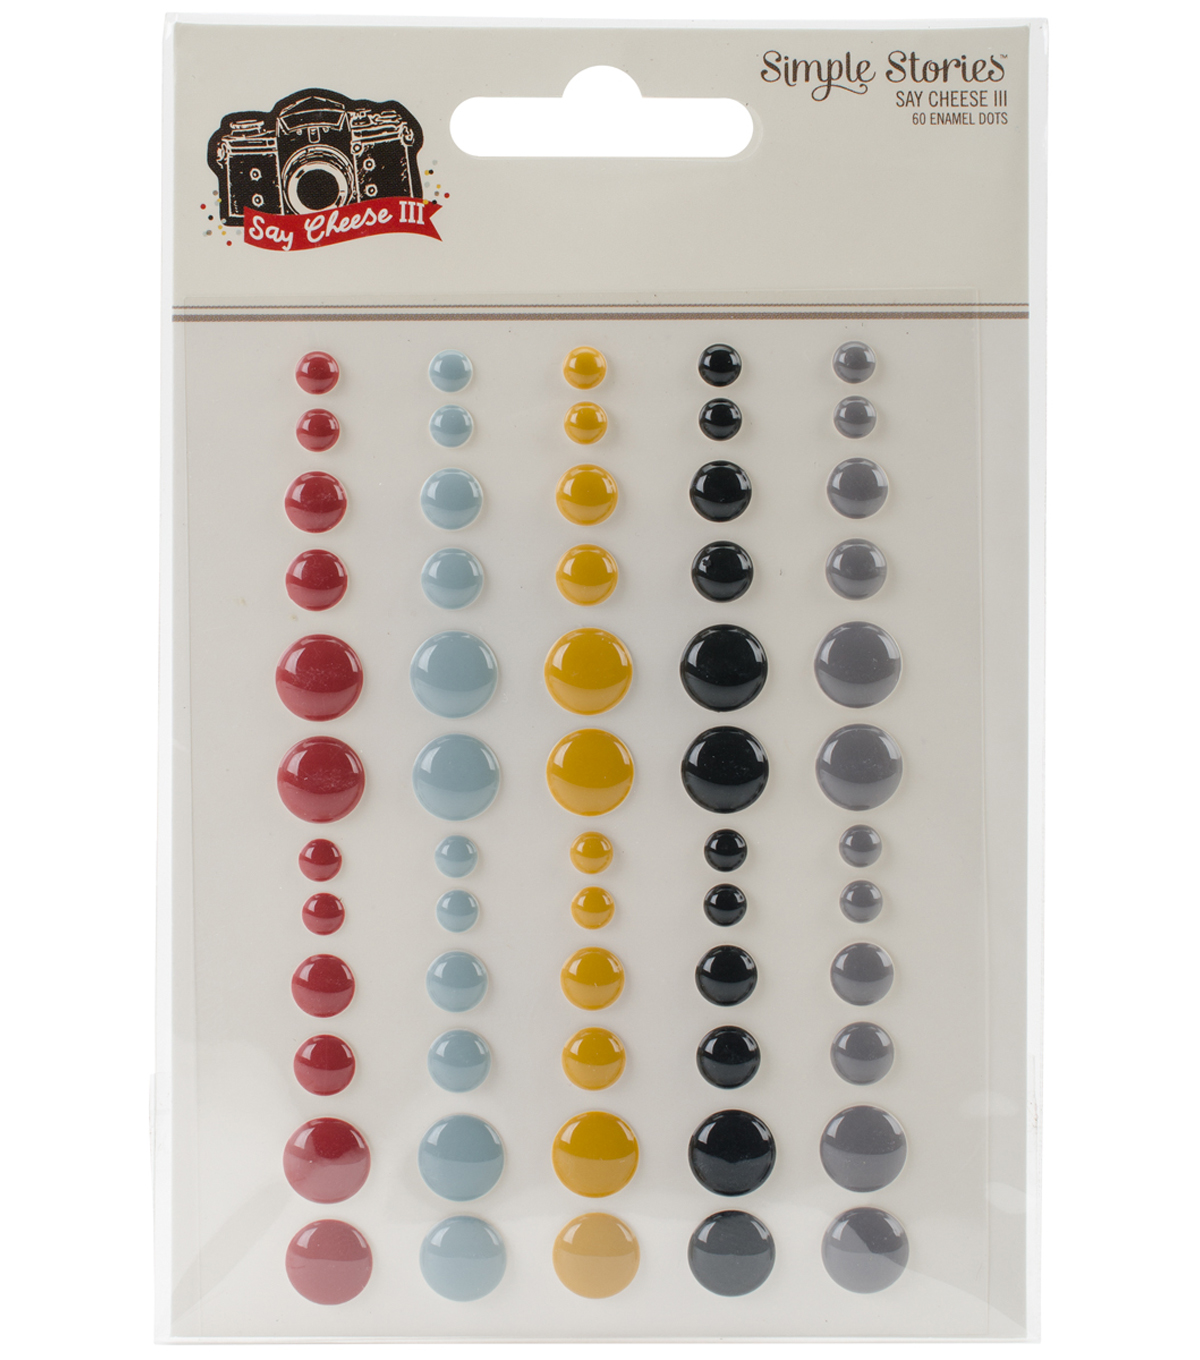 Say Cheese III Enamel Dots Embellishments